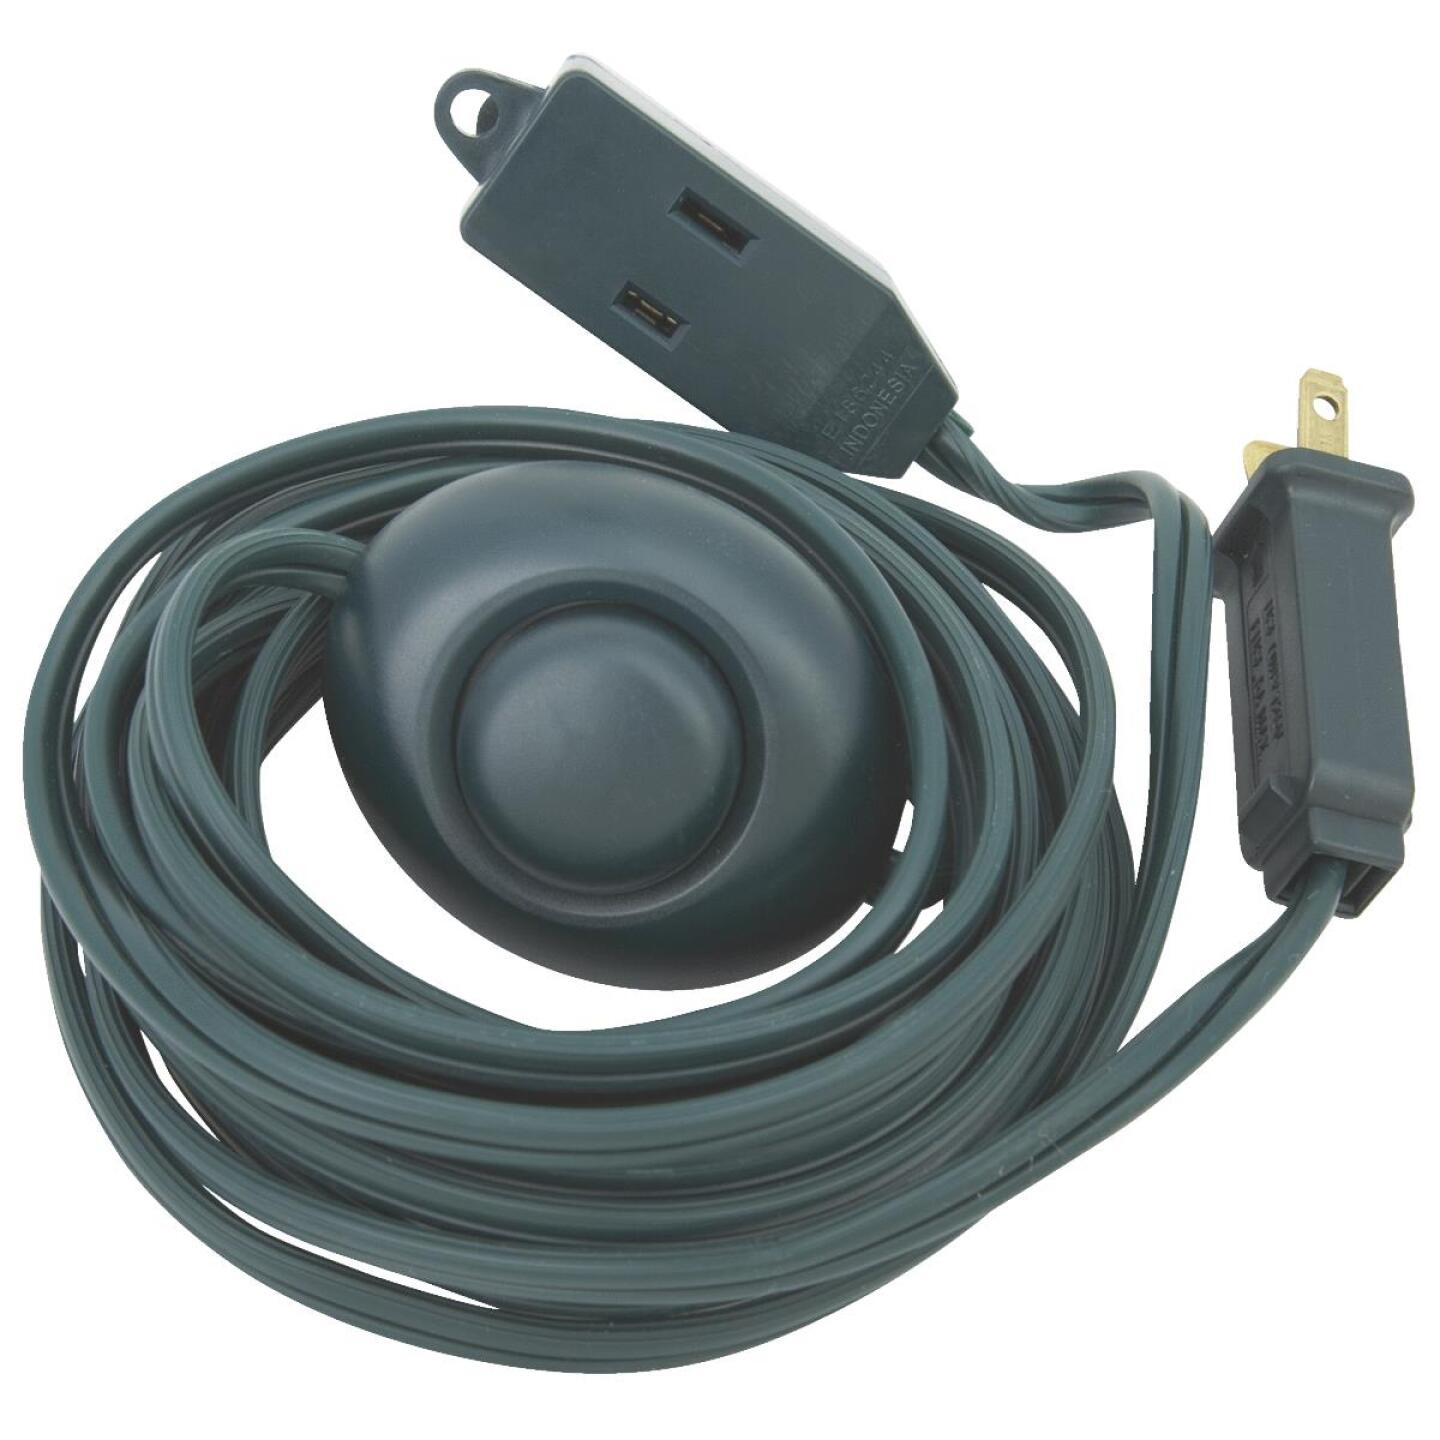 Do it 15 Ft. 18/2 Green Extension Cord with Foot Switch Image 3